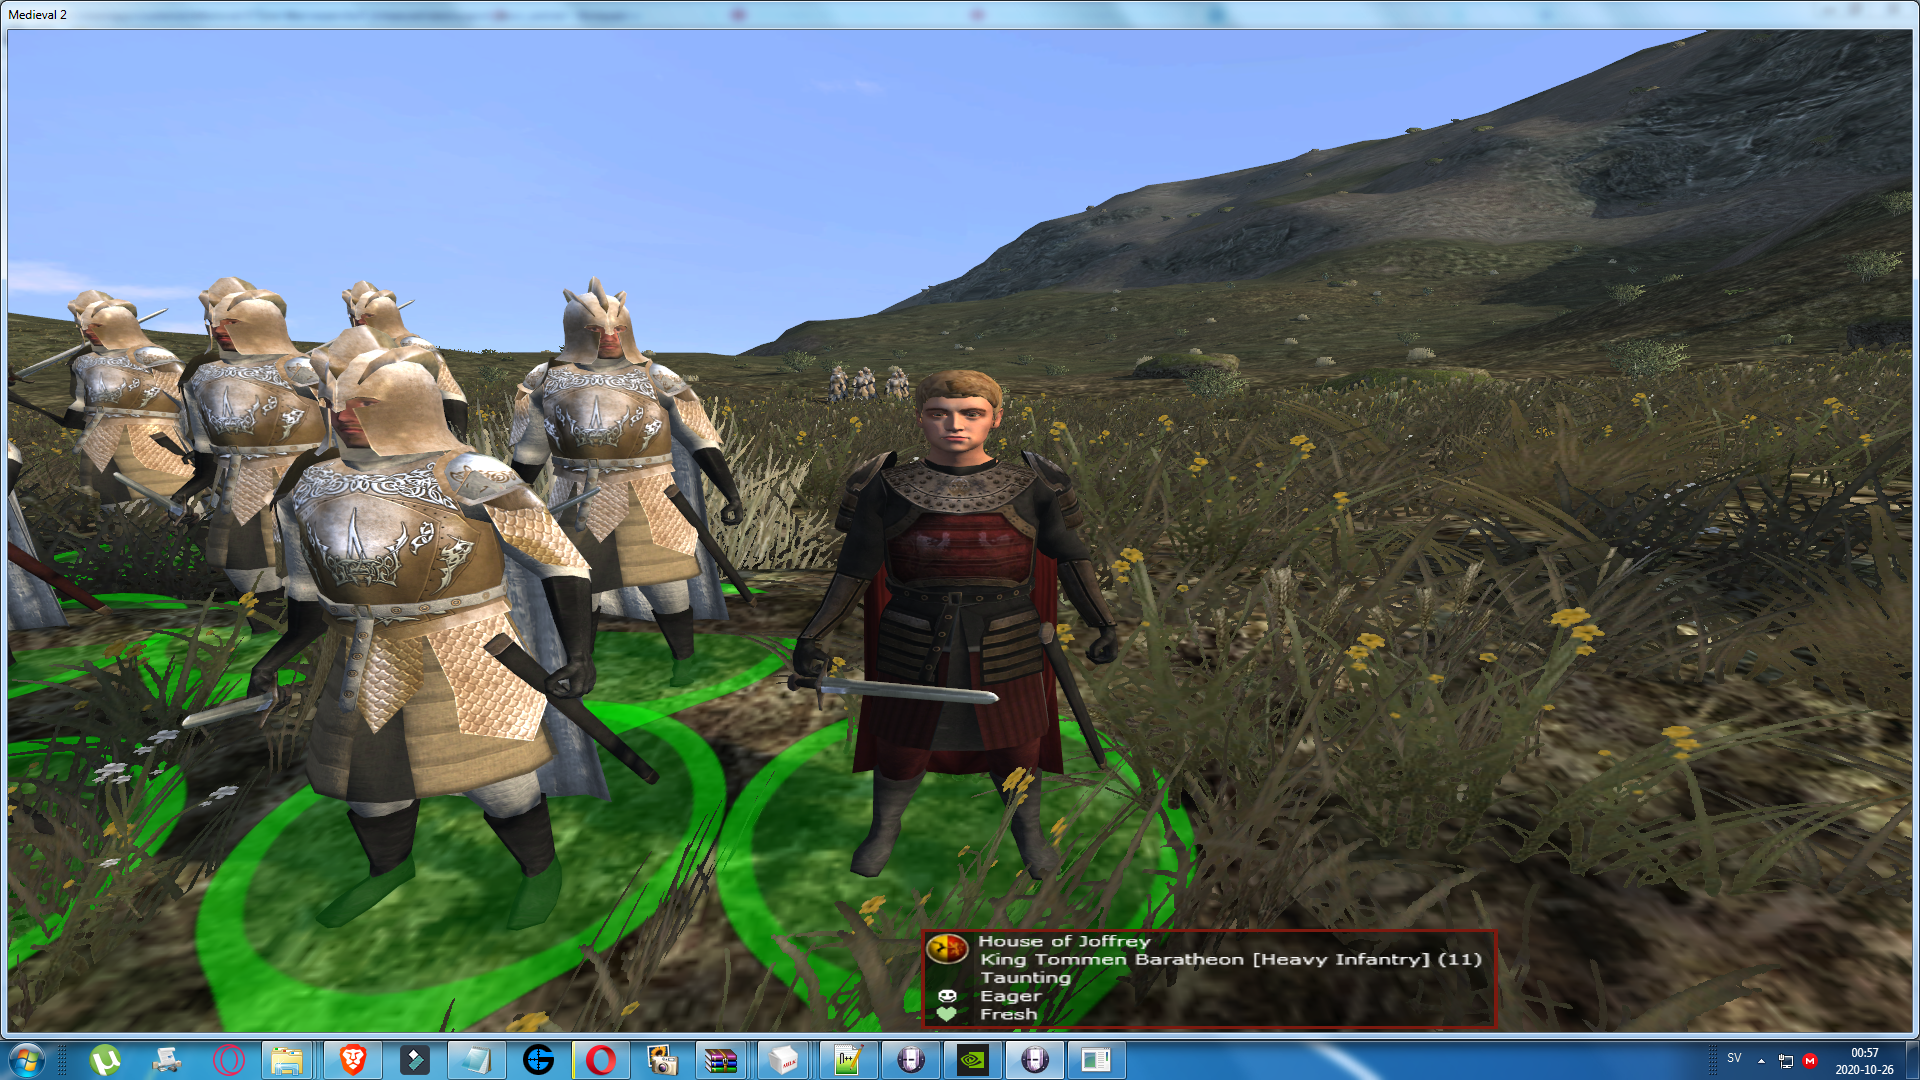 King Tommen Baratheon has been added to the mod!